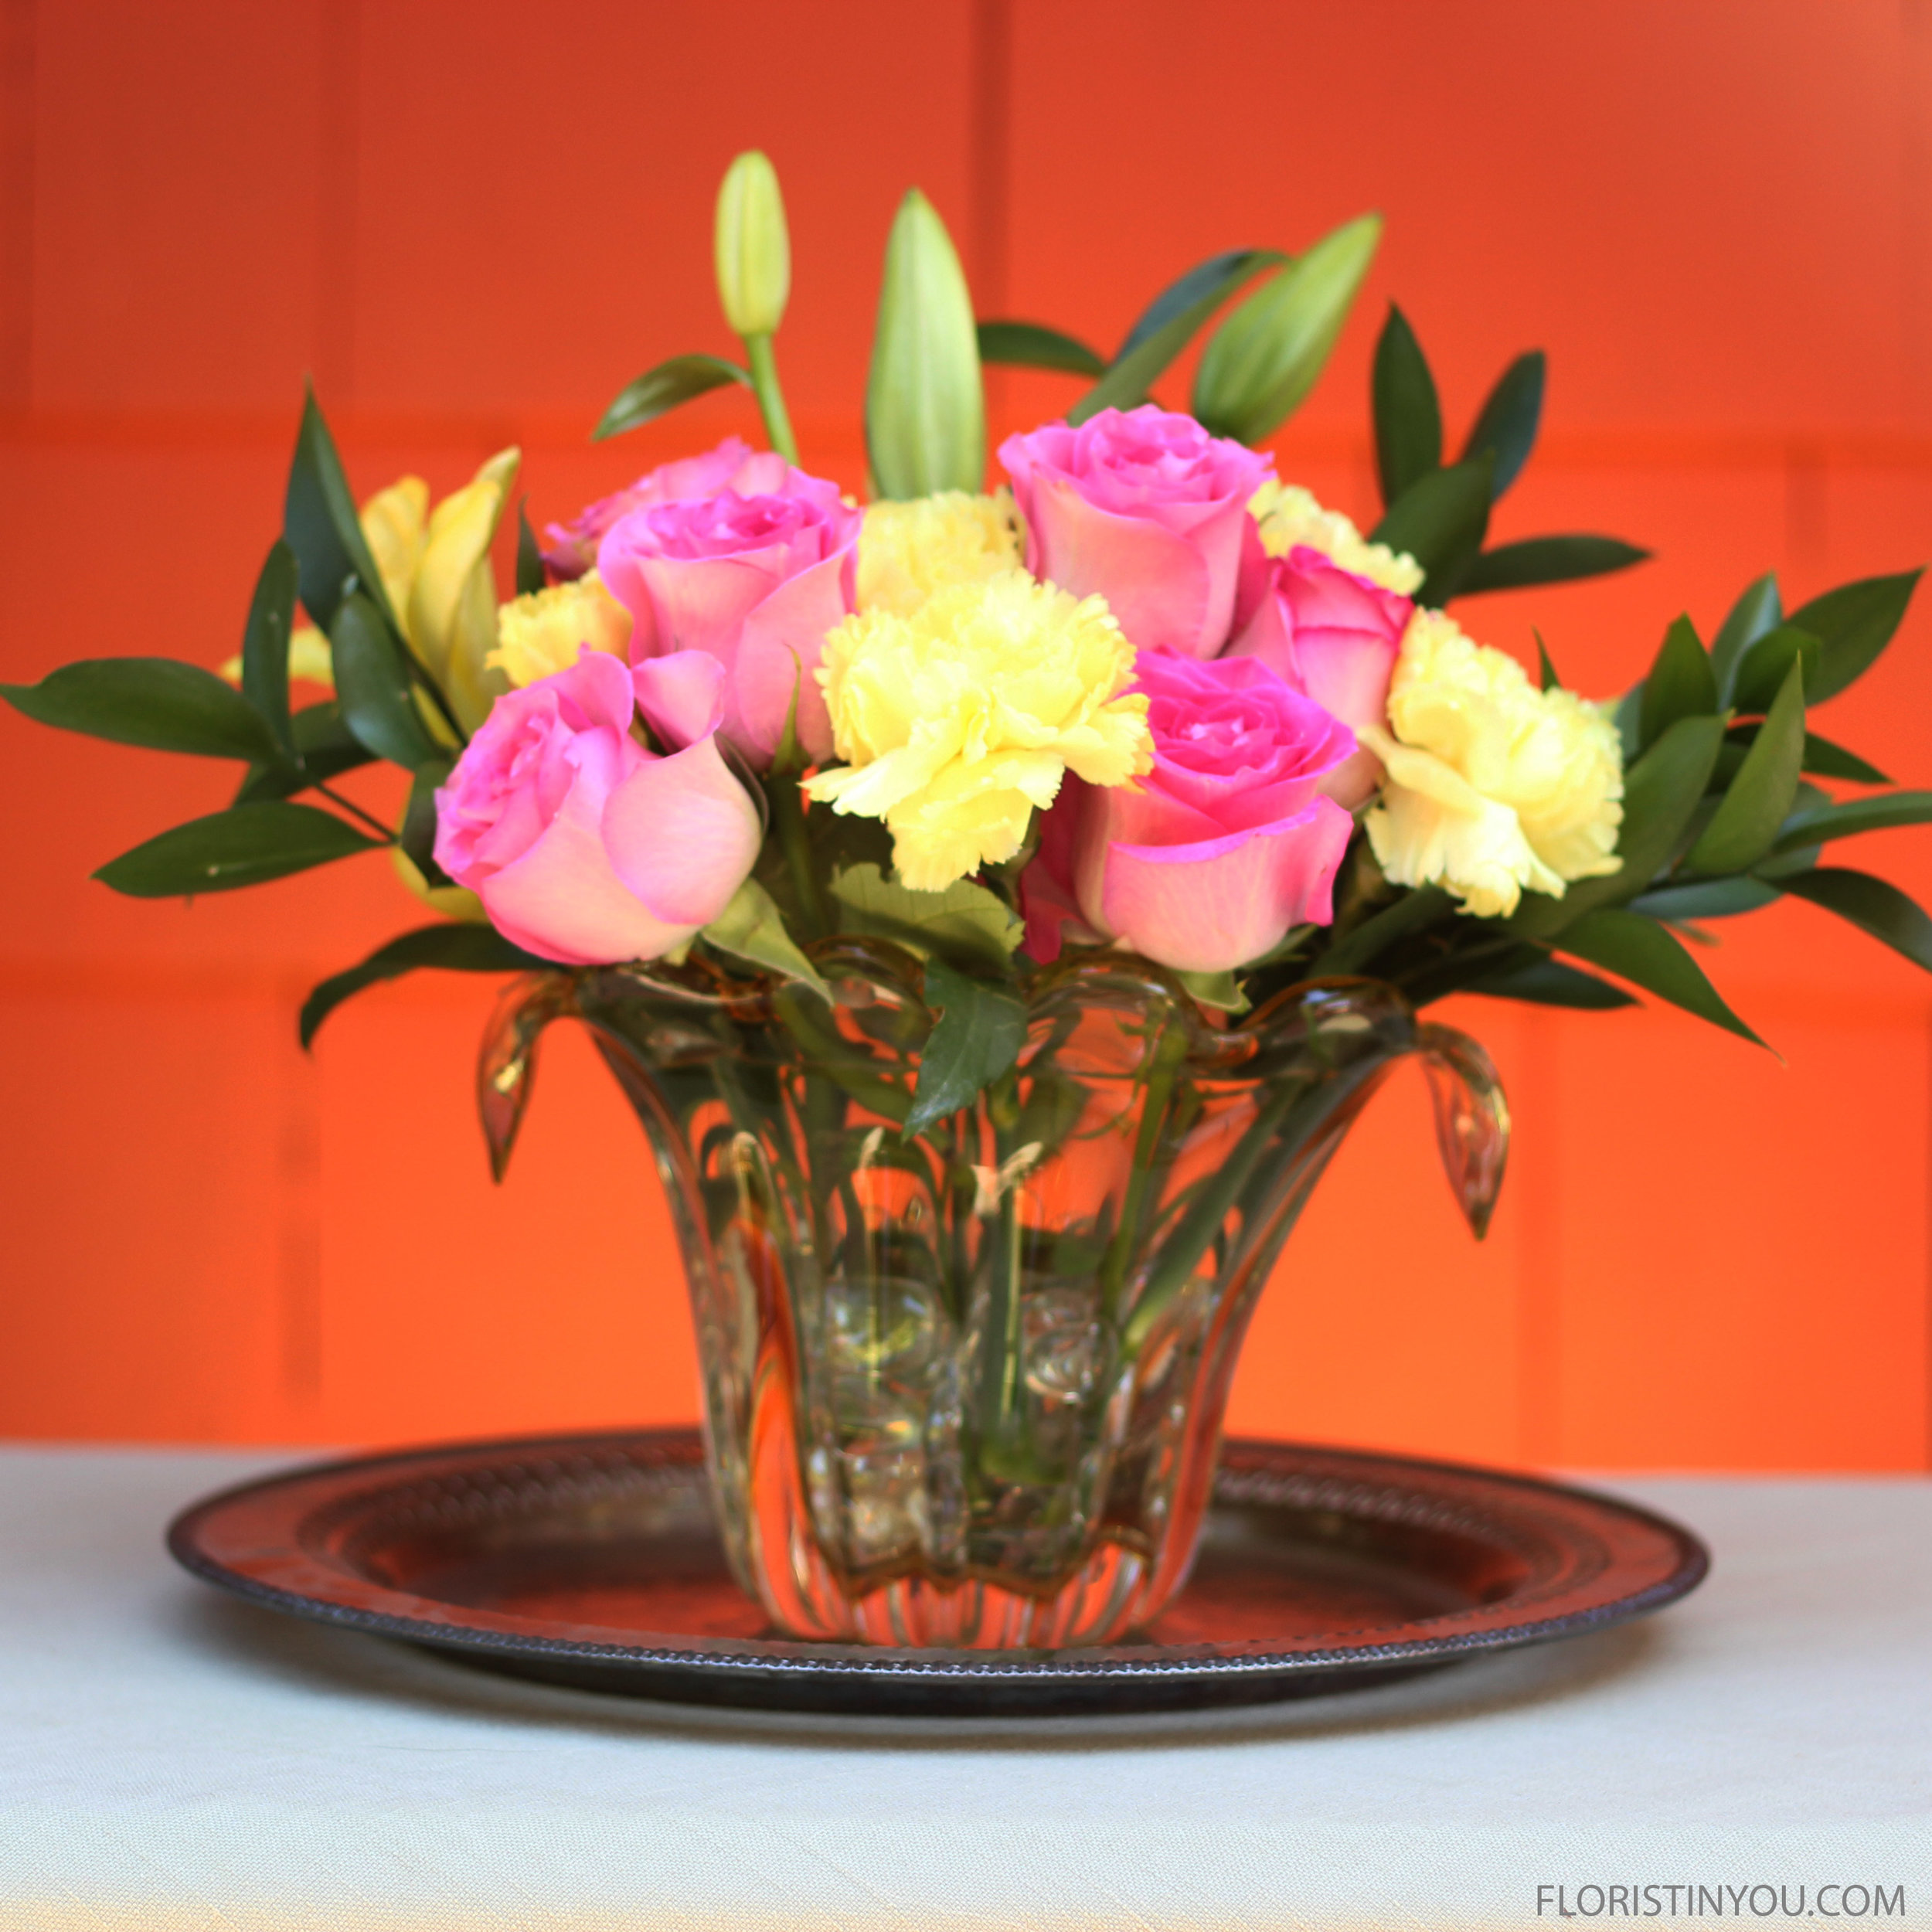 """Arranging Flowers You Bought an Online in Your Vase                     Normal   0           false   false   false     EN-US   JA   X-NONE                                                                                                                                                                                                                                                                                                                                                                              /* Style Definitions */ table.MsoNormalTable {mso-style-name:""""Table Normal""""; mso-tstyle-rowband-size:0; mso-tstyle-colband-size:0; mso-style-noshow:yes; mso-style-priority:99; mso-style-parent:""""""""; mso-padding-alt:0in 5.4pt 0in 5.4pt; mso-para-margin:0in; mso-para-margin-bottom:.0001pt; mso-pagination:widow-orphan; font-size:12.0pt; font-family:Cambria; mso-ascii-font-family:Cambria; mso-ascii-theme-font:minor-latin; mso-hansi-font-family:Cambria; mso-hansi-theme-font:minor-latin;}"""